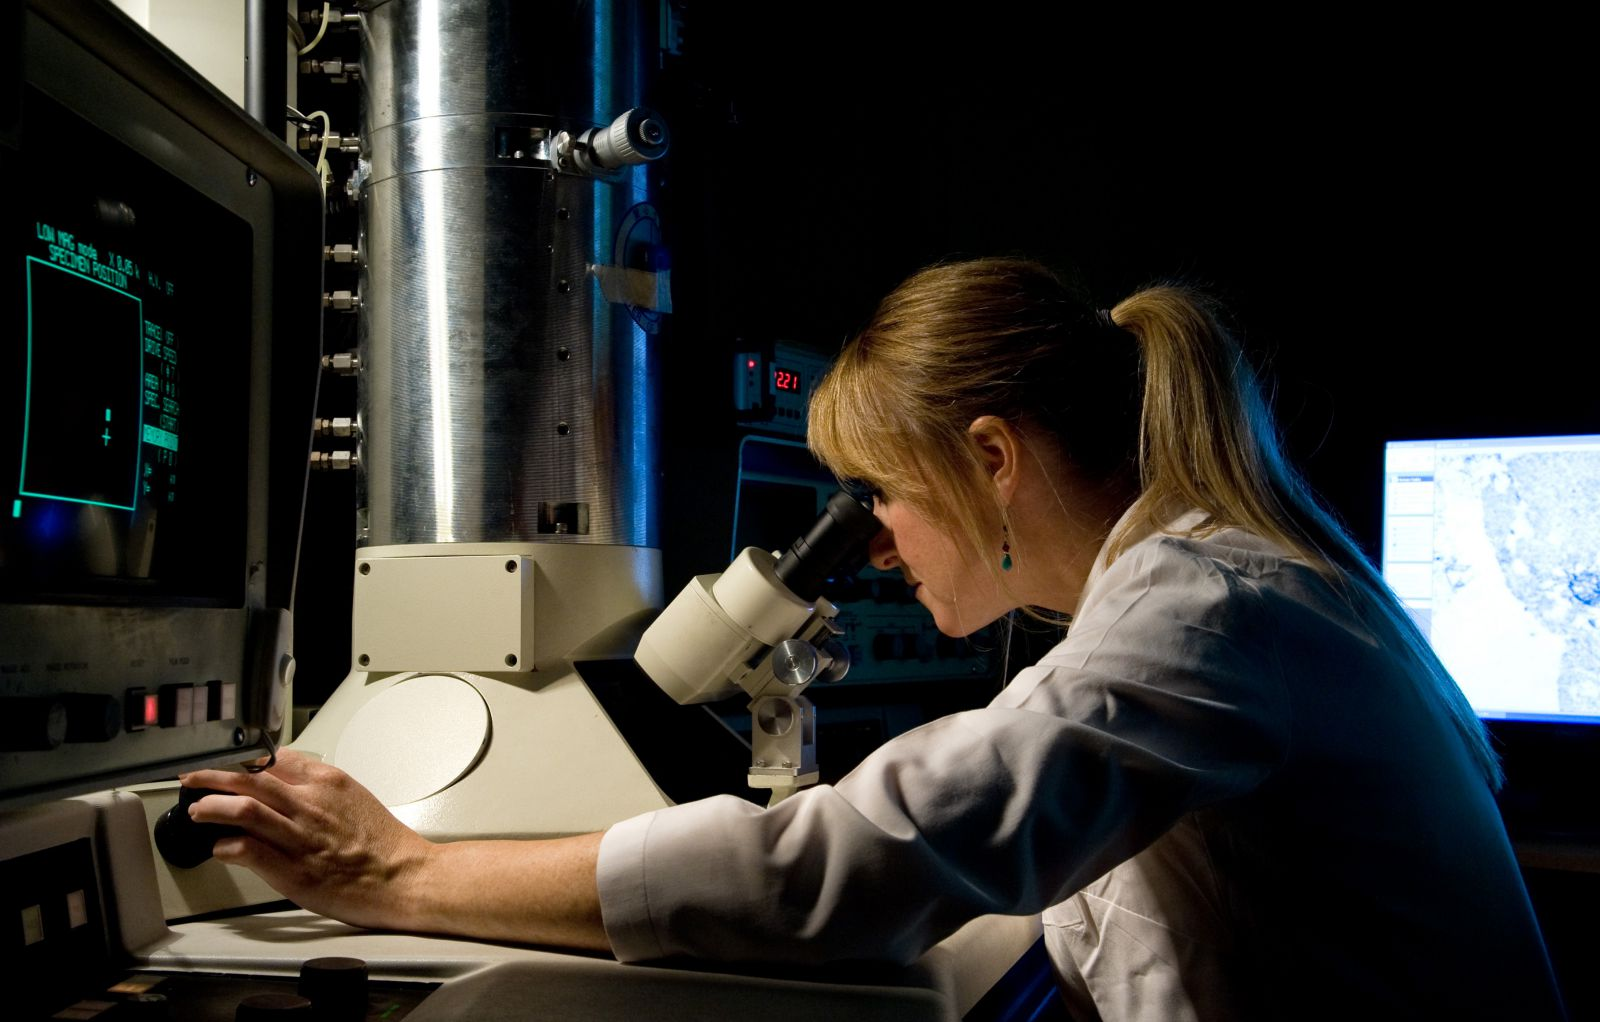 PhD student looks through a microscope in a science lab at the University of Sussex